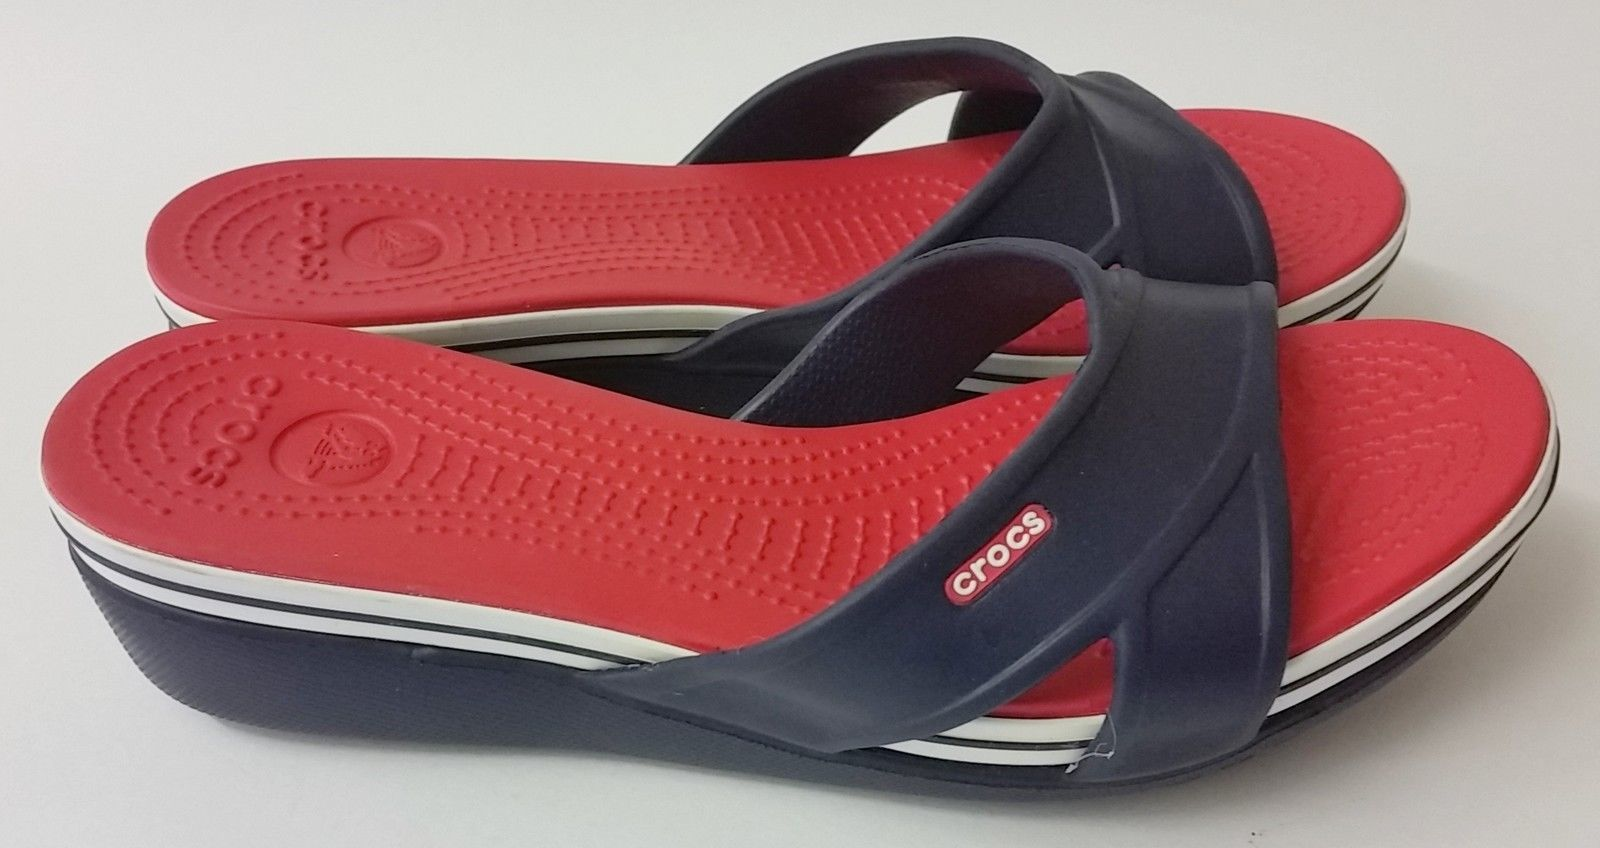 Crocs Shoes Sandals Red White Blue Slides Womens Size 9